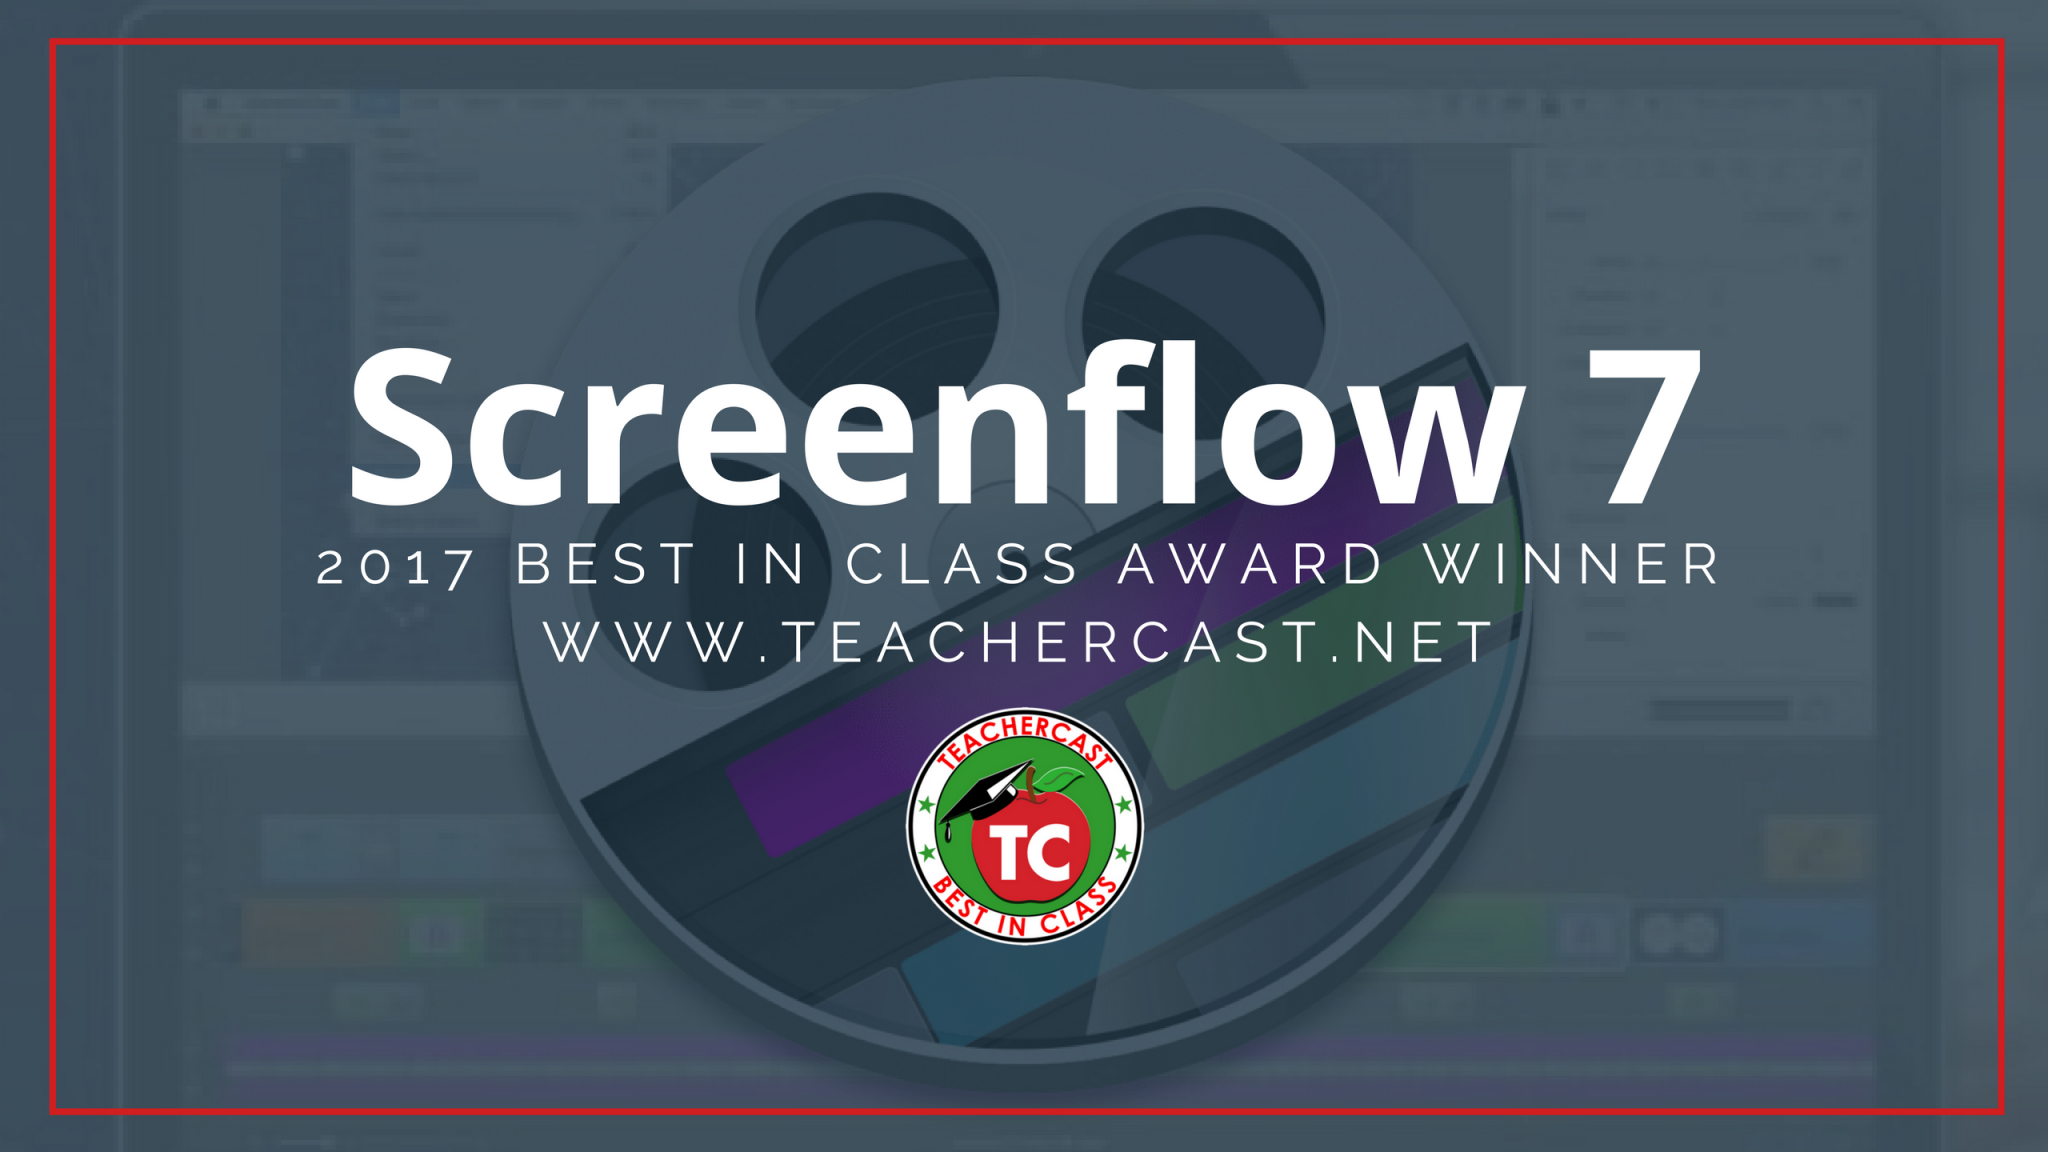 Screenflow: TeacherCast Best in Class Award